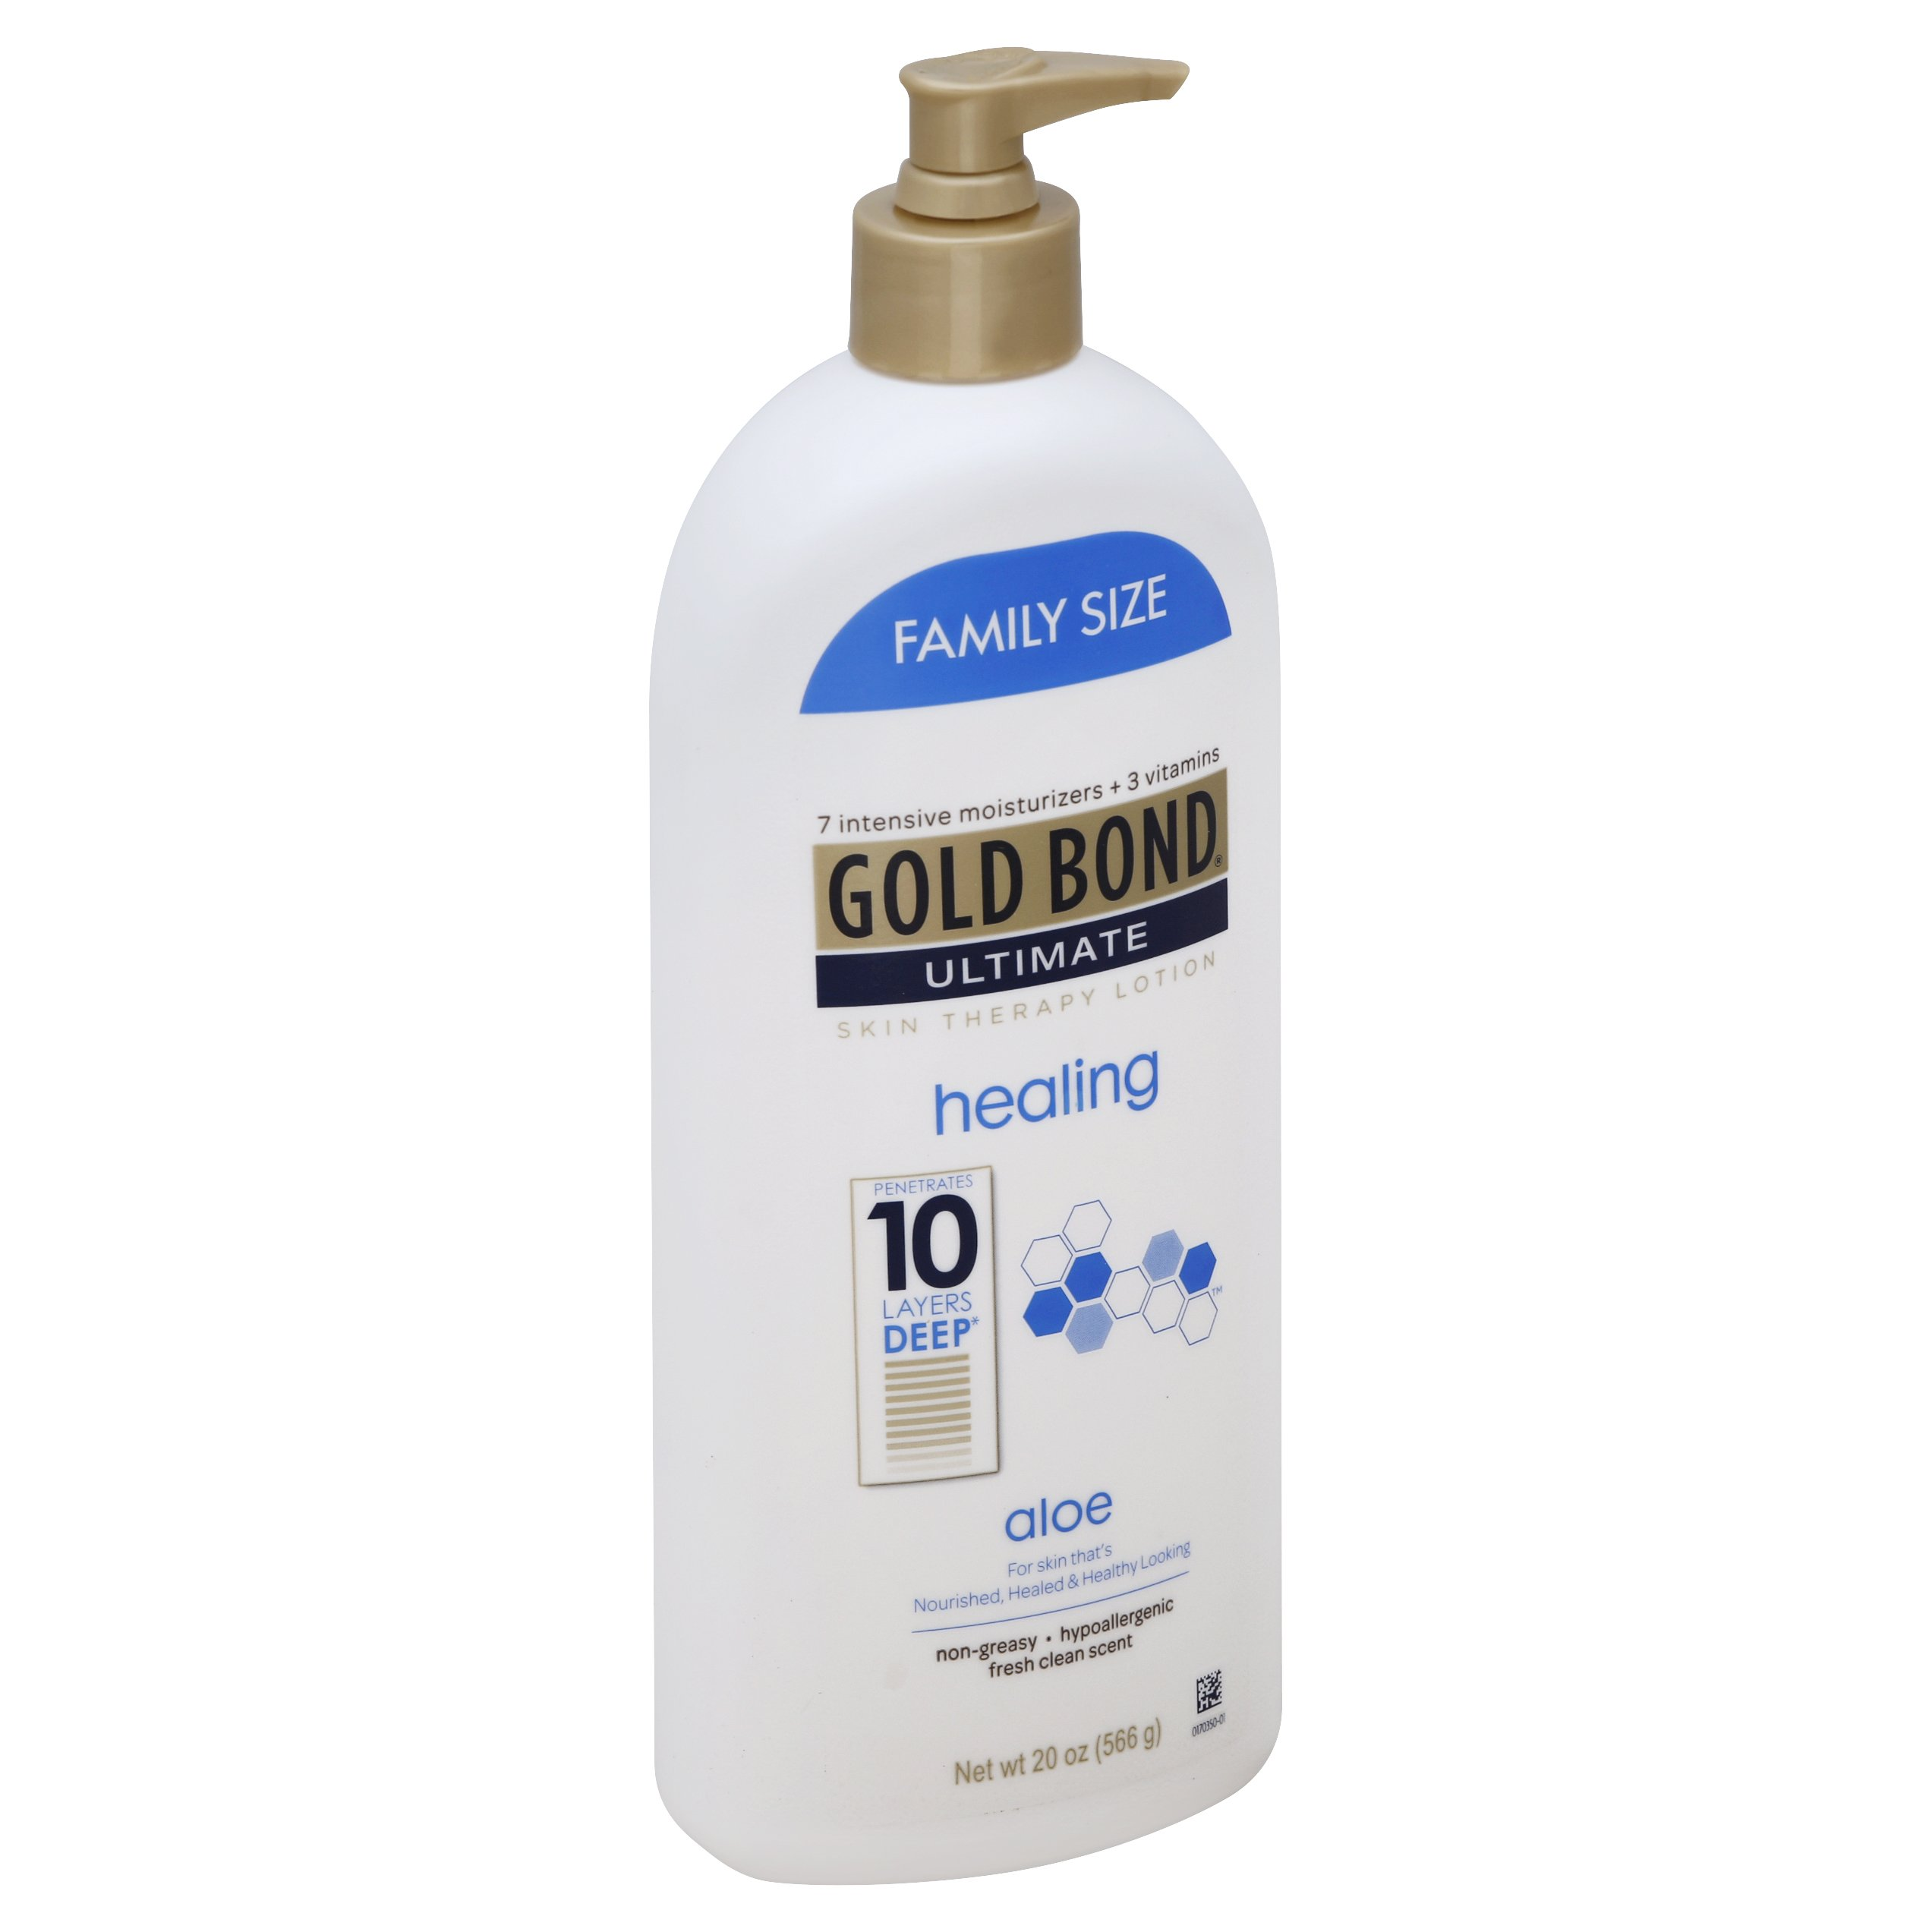 gold bond ultimate healing lotion with aloe family size 20oz